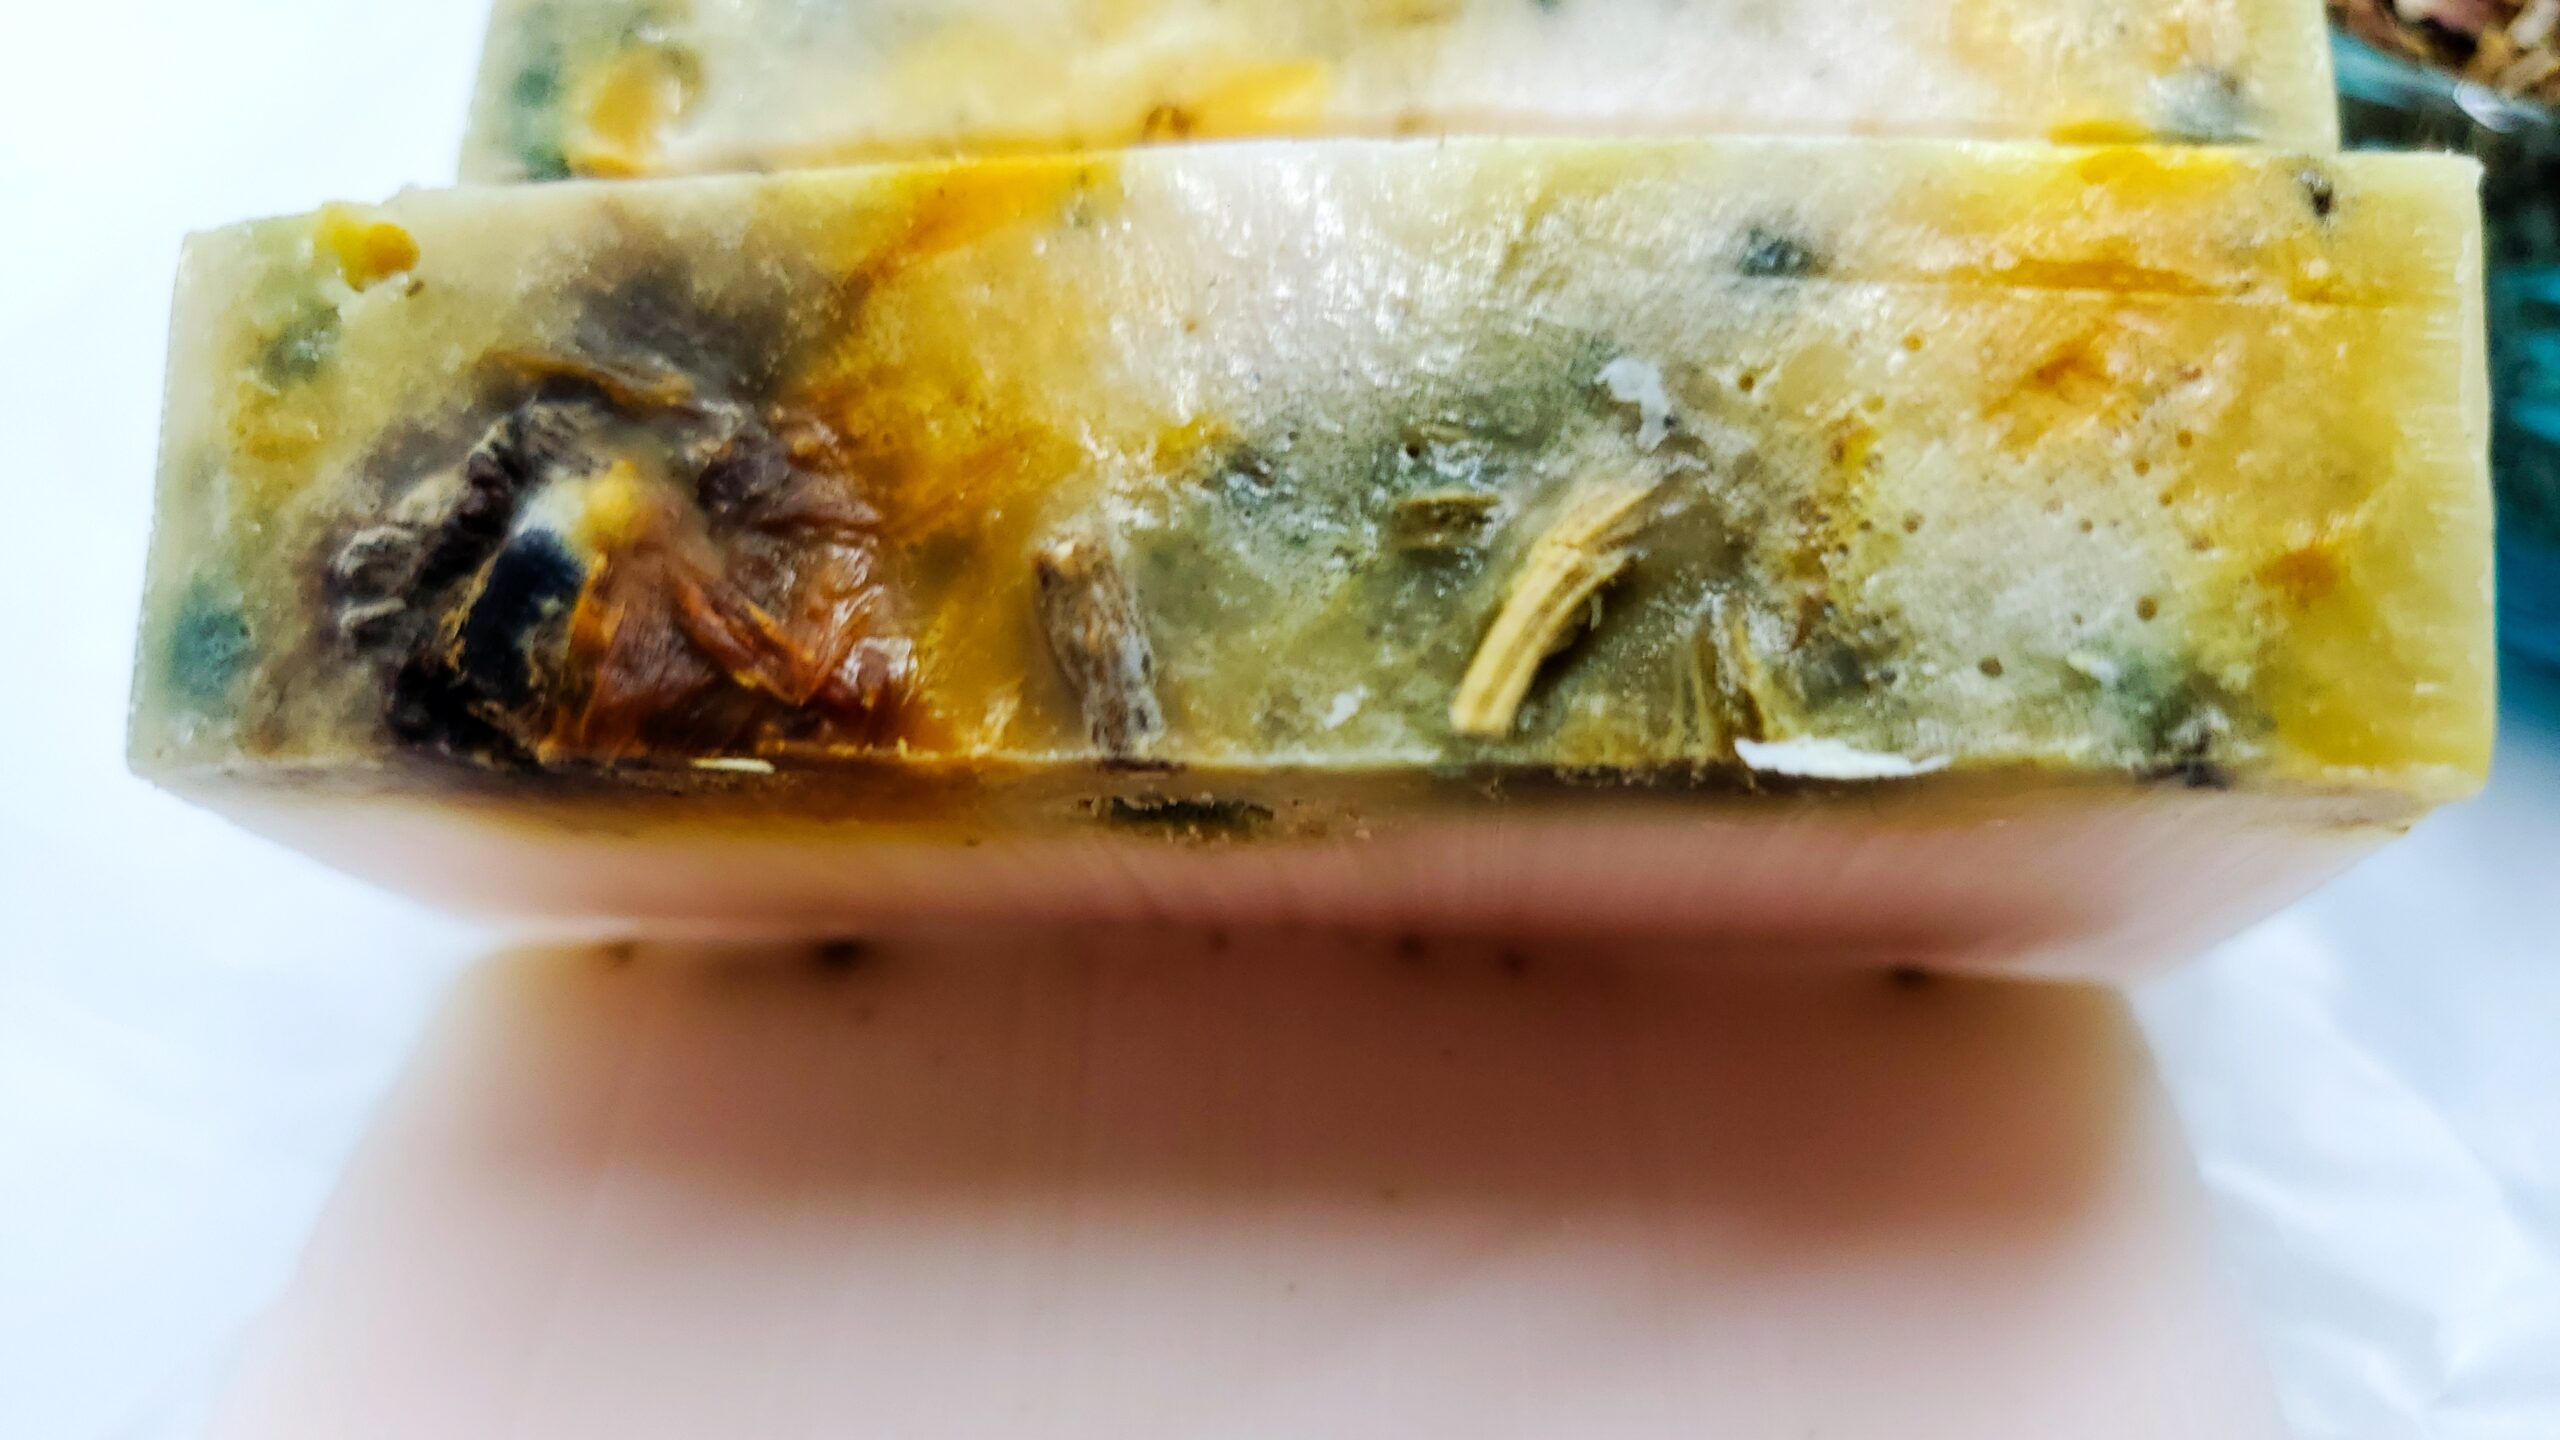 Blood and Lymphatic soap